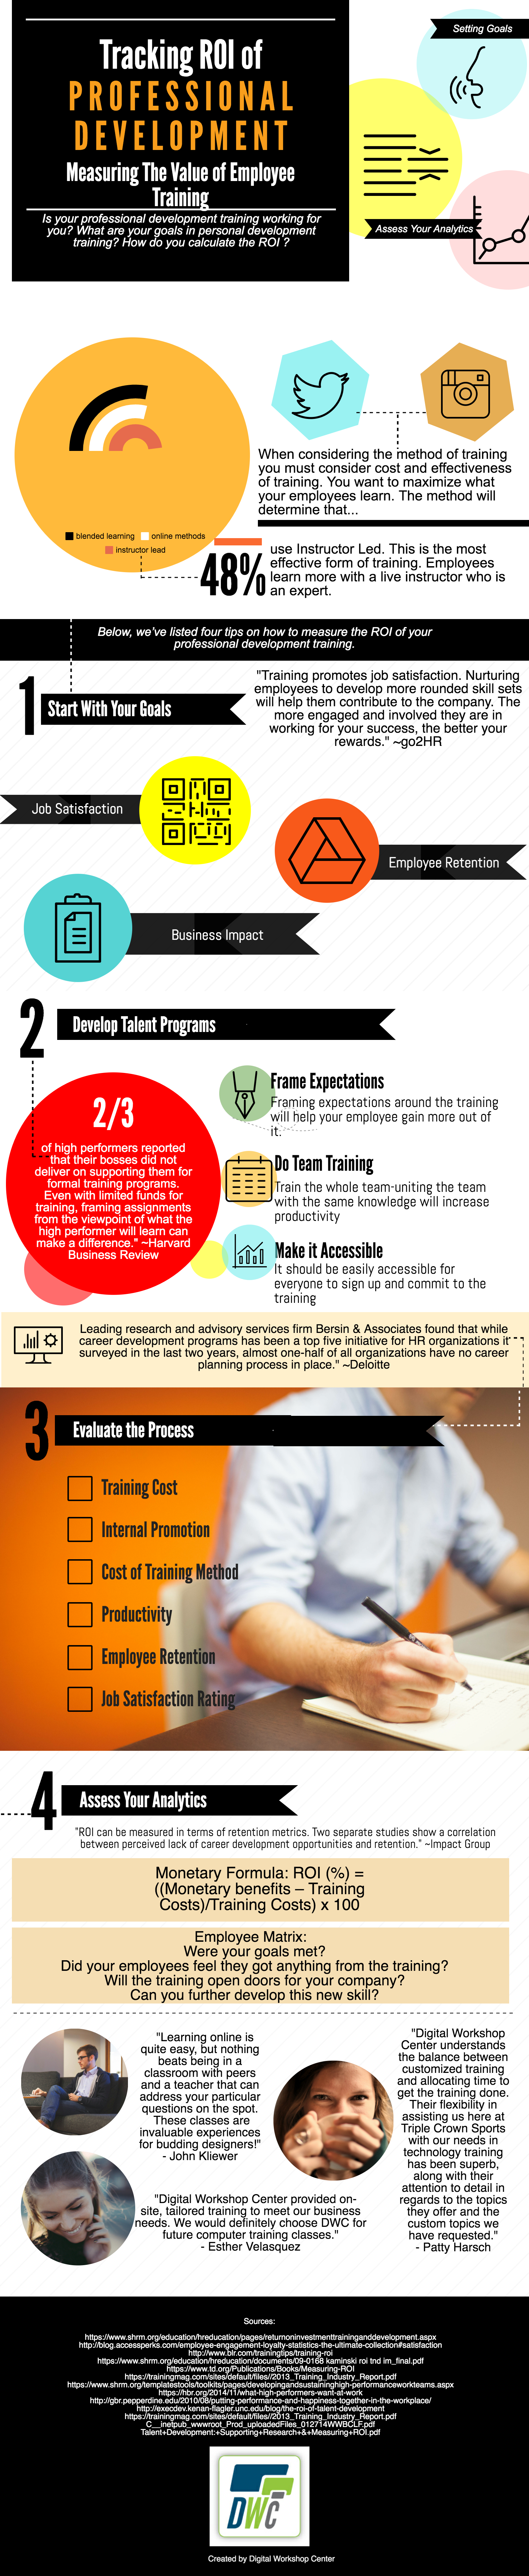 Tracking ROI of Professional Development in 4 steps